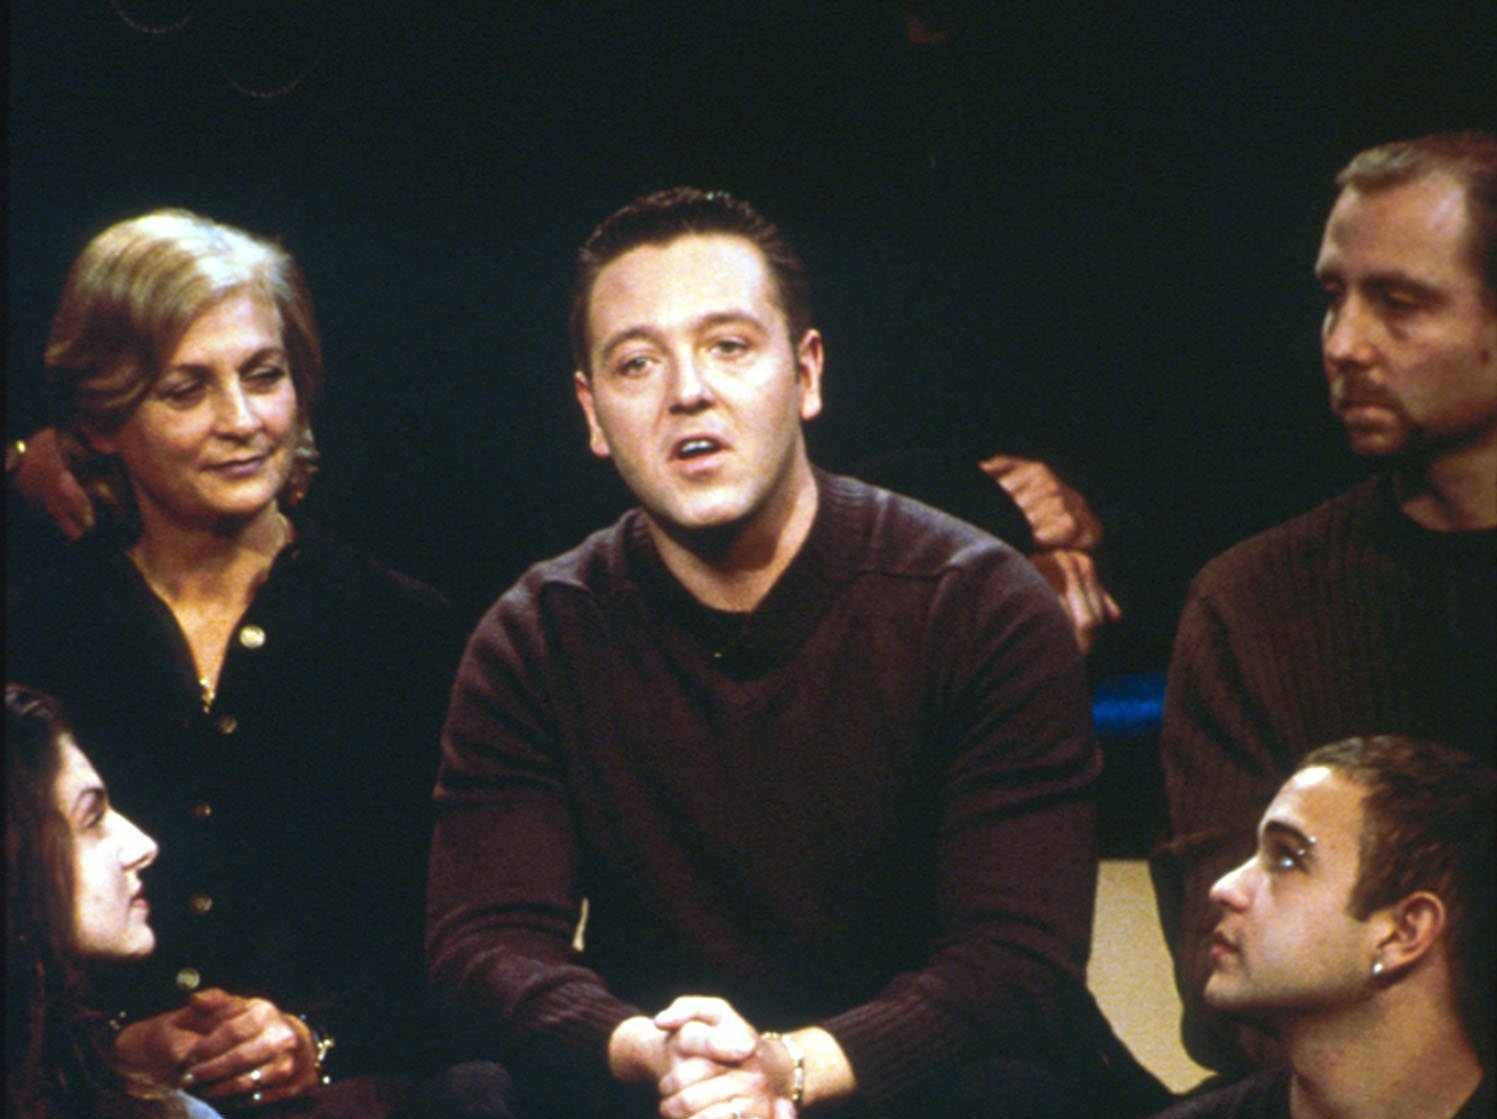 """John Edward talks to the audience of the """"Crossing Over with John Edward"""" show in 2001."""